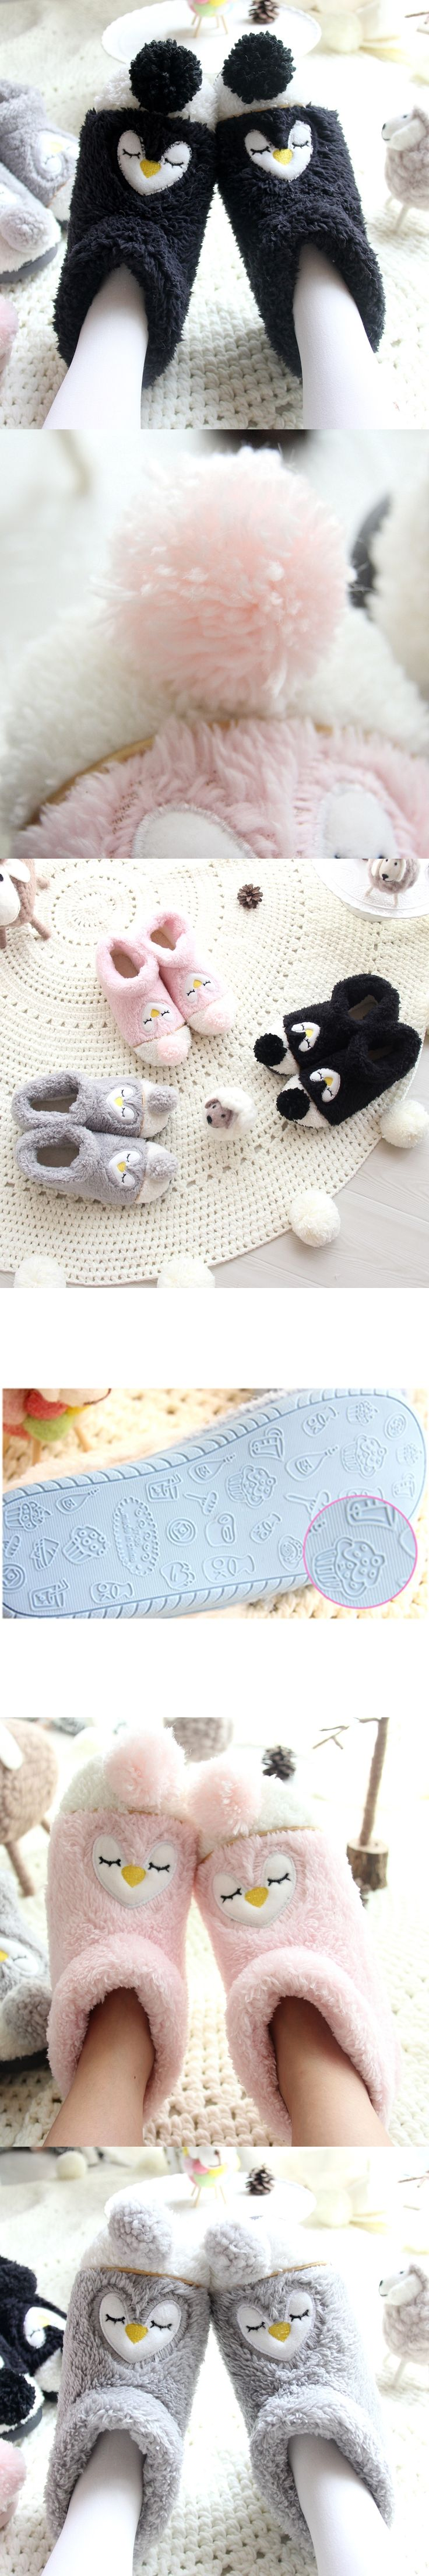 Cartoon Indoor Slippers For Adults Plush Animal Slippers Warm Thicke Cotton Boots At Home Pantufa de bichos